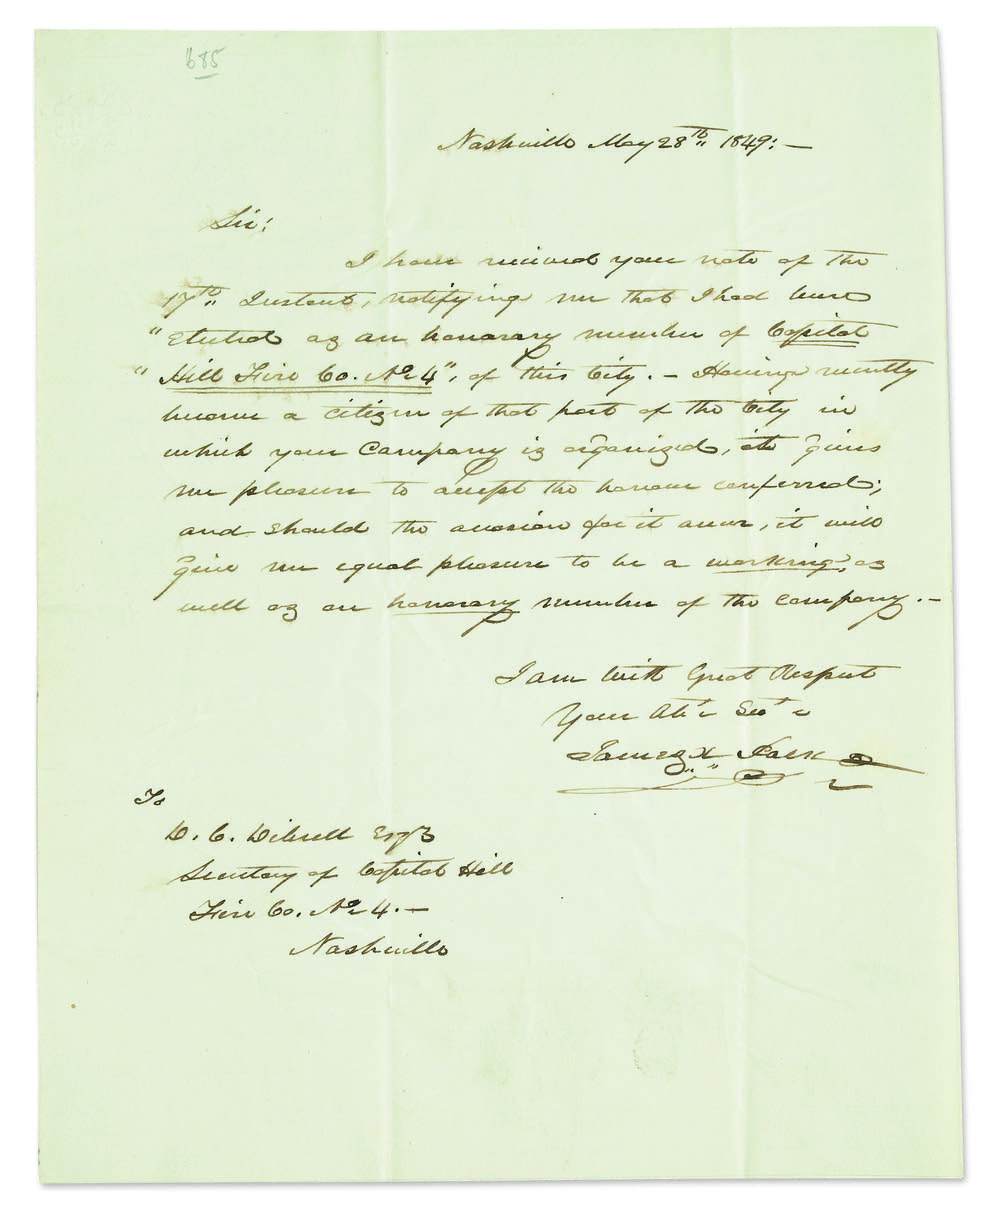 Letter written by James K. Polk